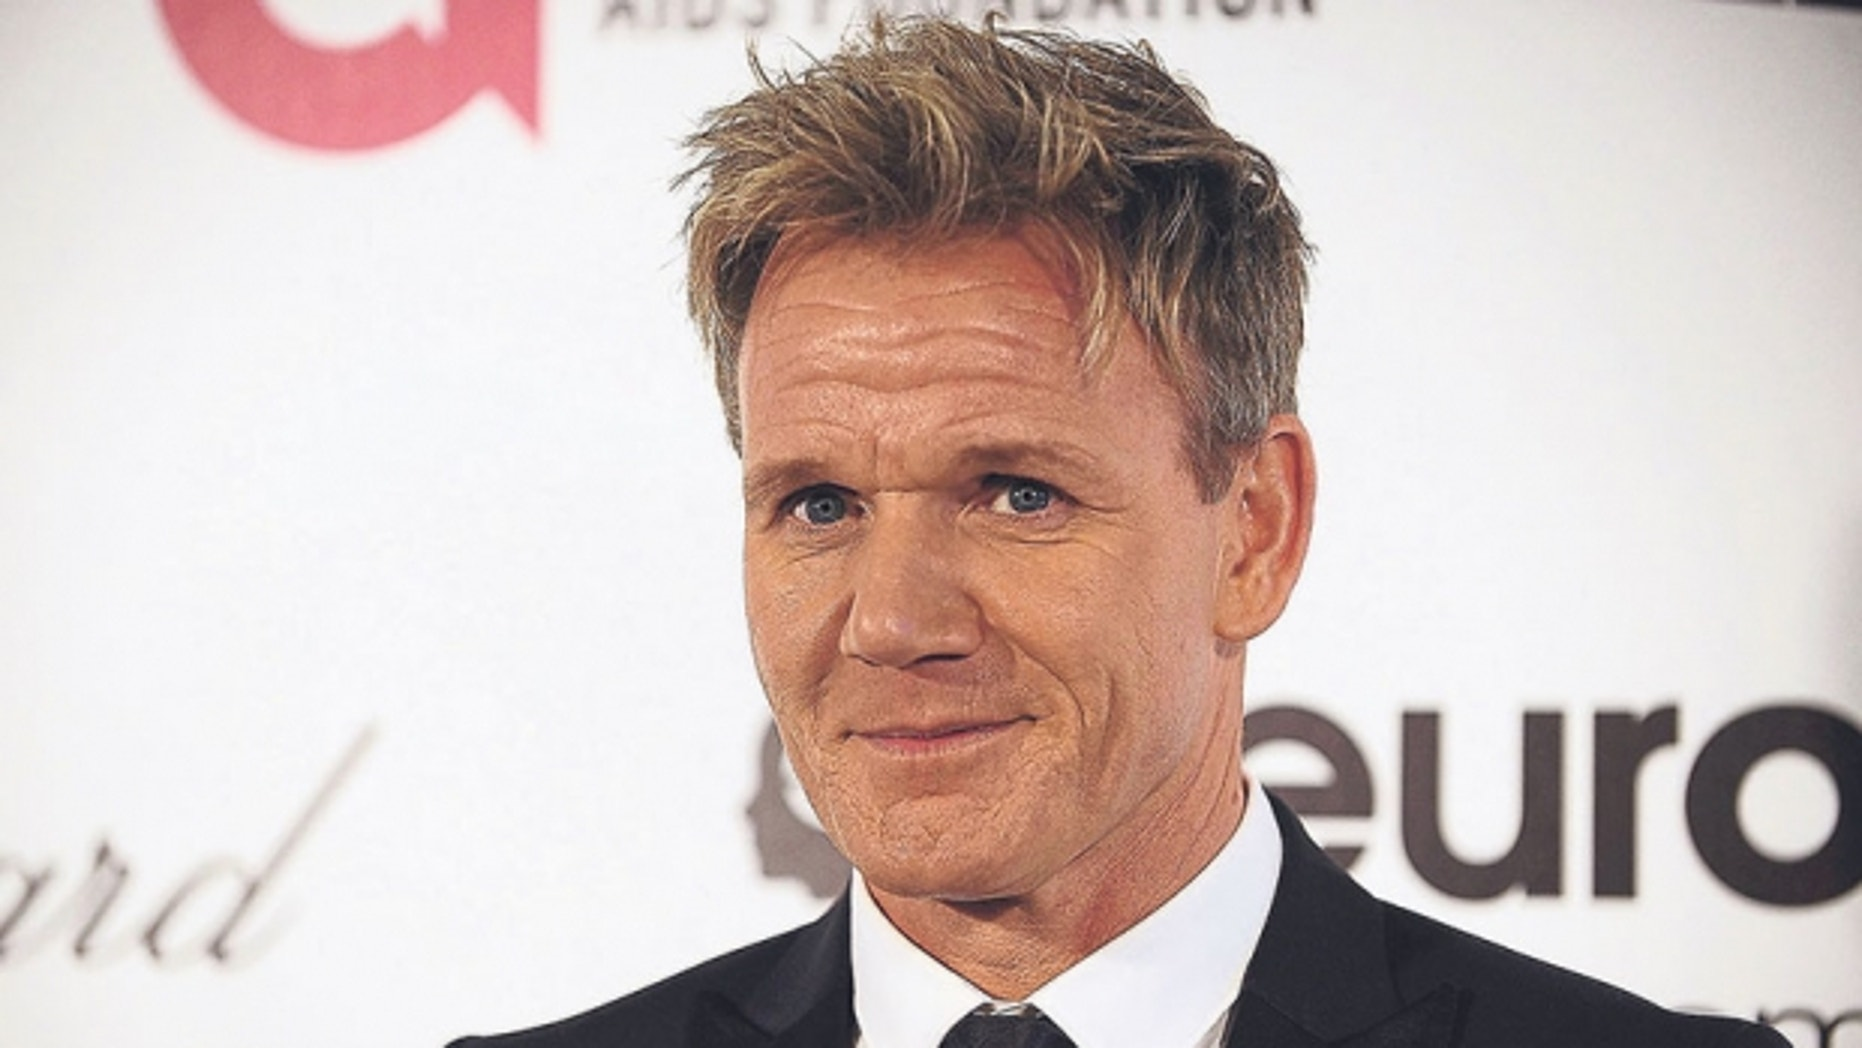 Gordon ramsay opened up to fans in a recent reddit chat